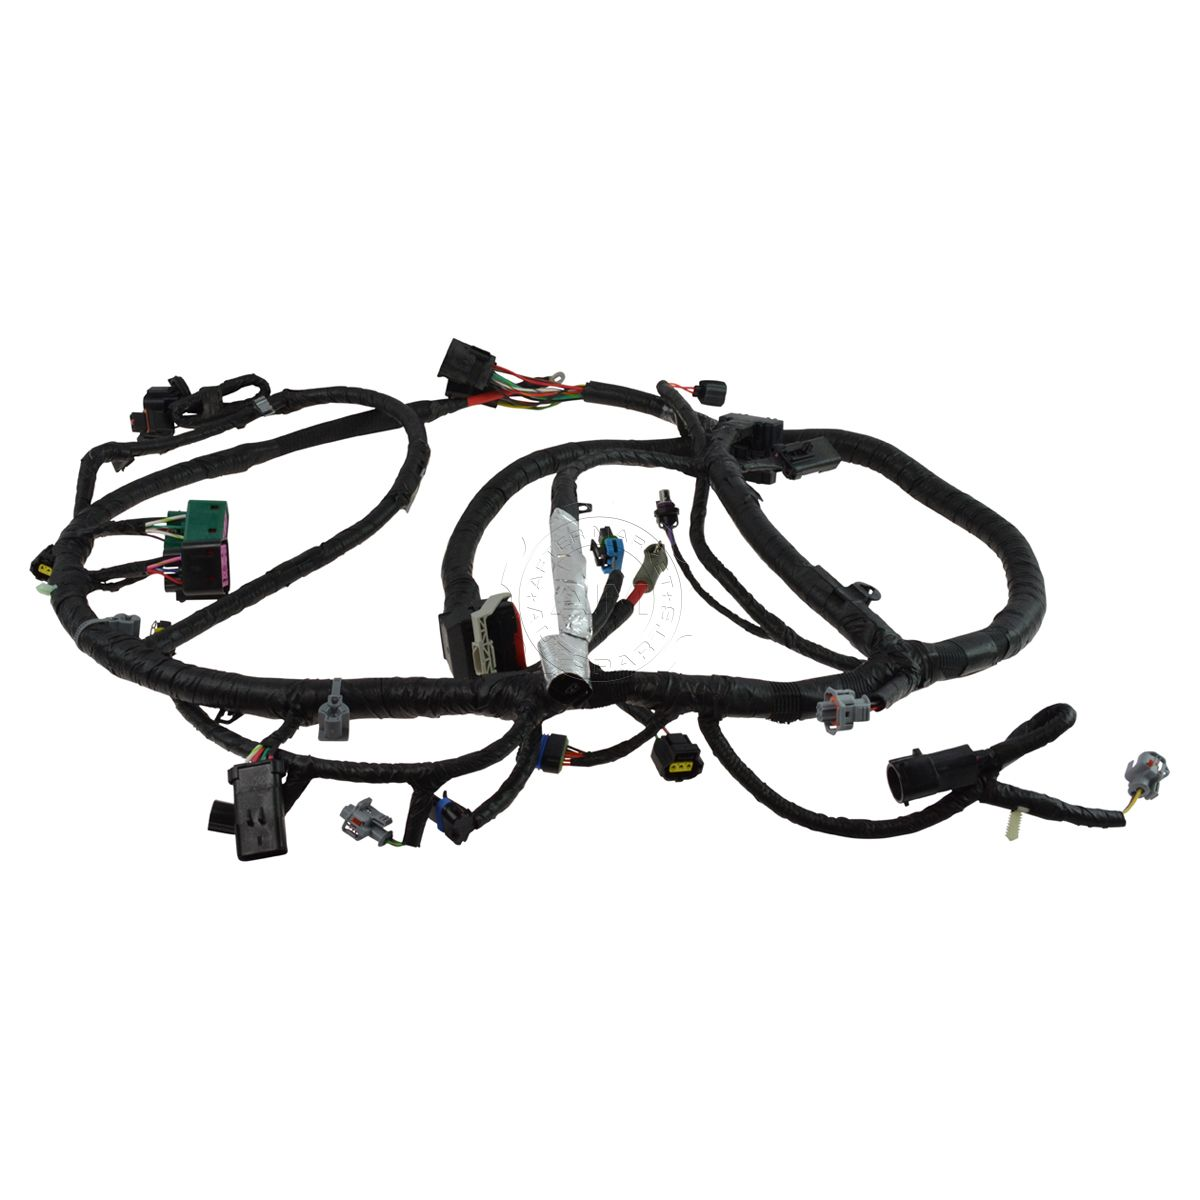 OEM Diesel Engine Wiring Harness for 04 Ford F250 F350 F450 04-05 Excursion  6.0